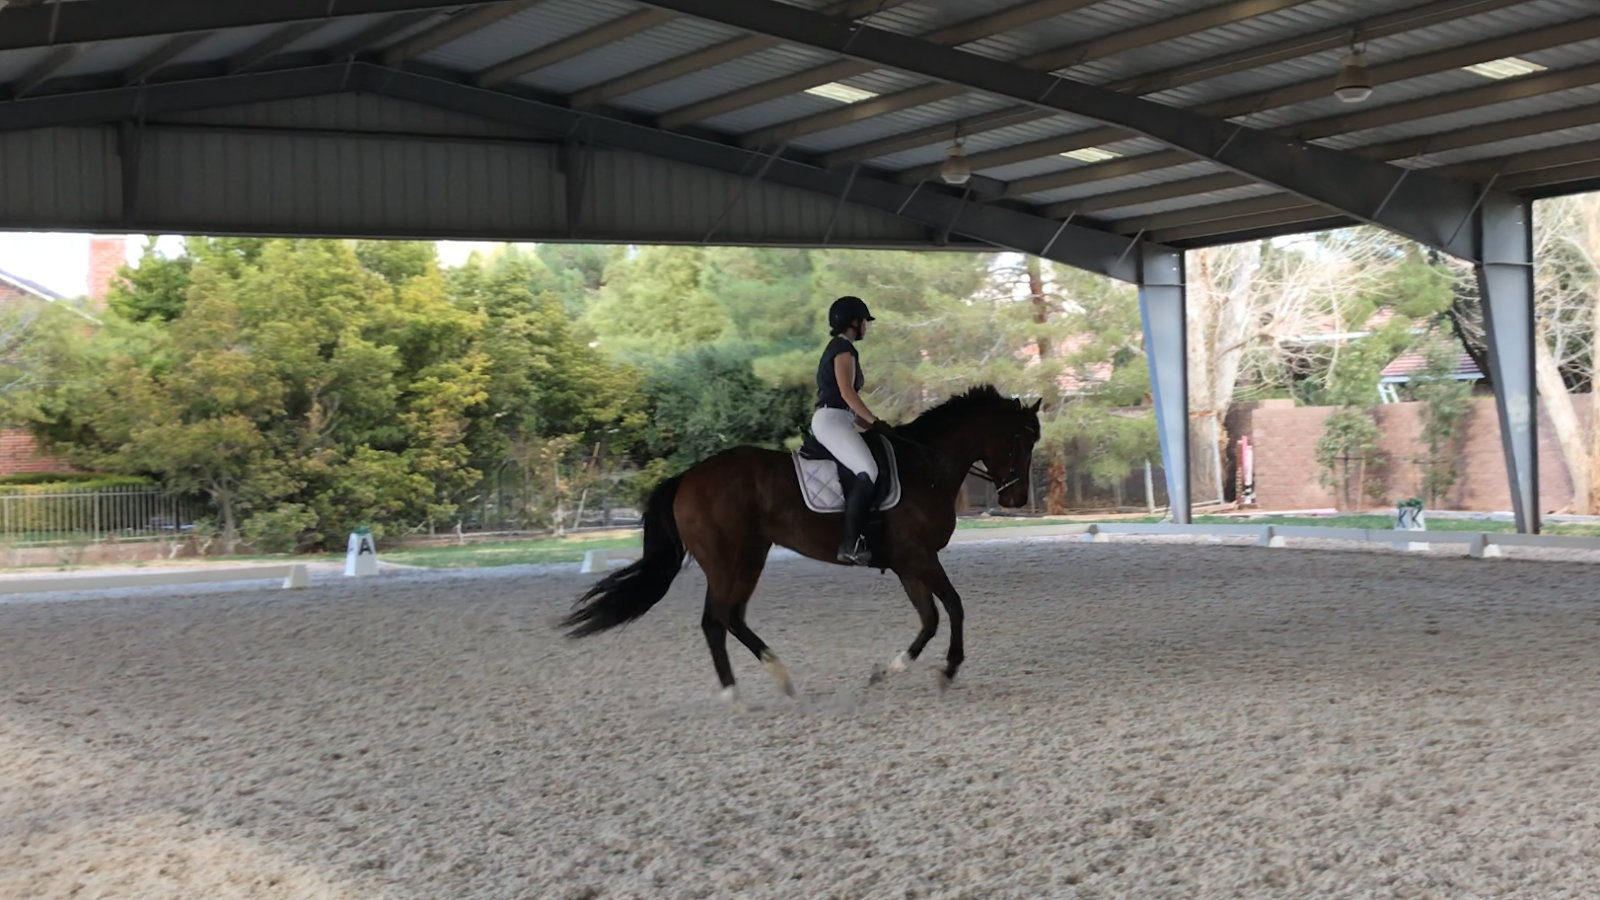 The Jumping Percheron: Total Saddle Fit Stability Stirrup Leathers